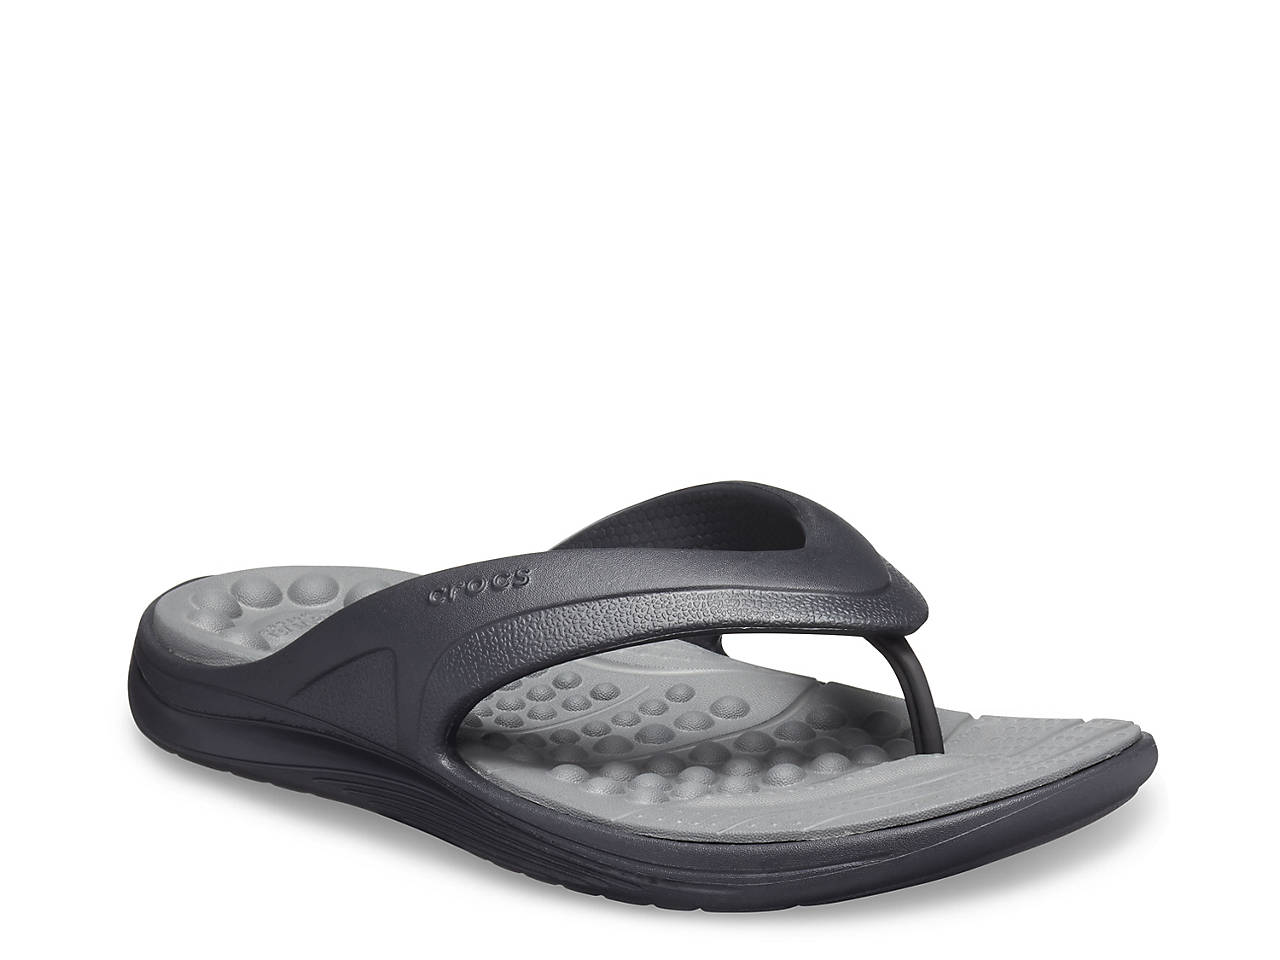 357881163adc Crocs Reviva Flip Flop Men s Shoes